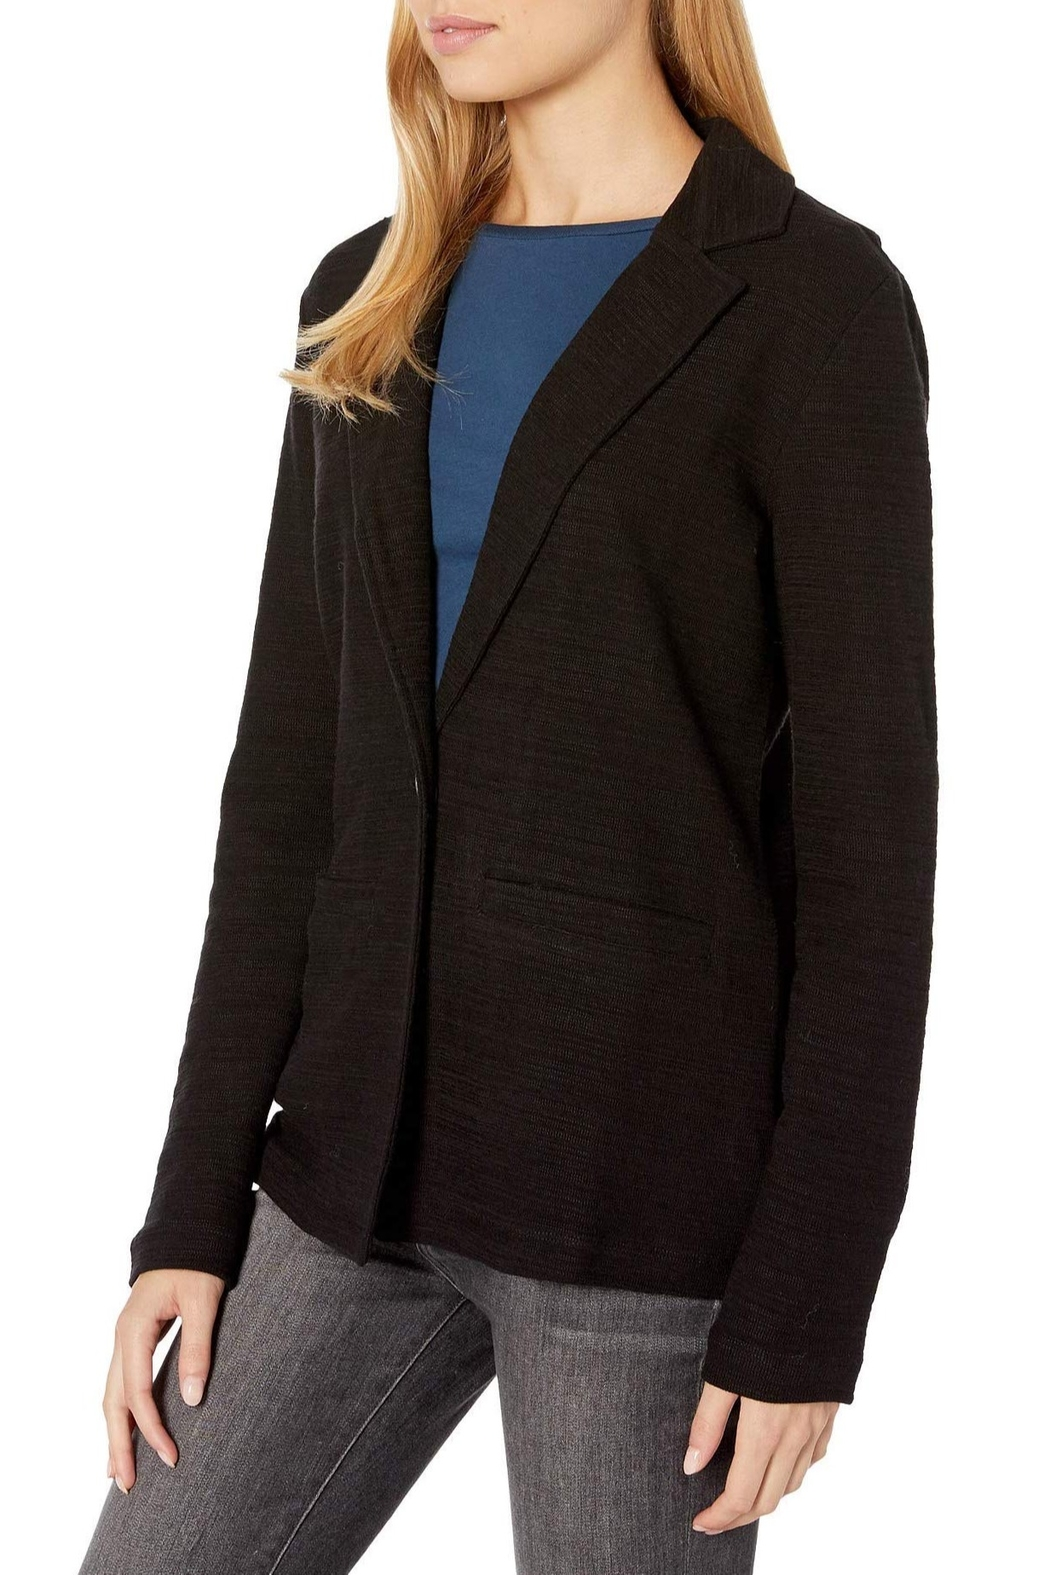 Sanctuary New Classic Blazer - Back Cropped Image